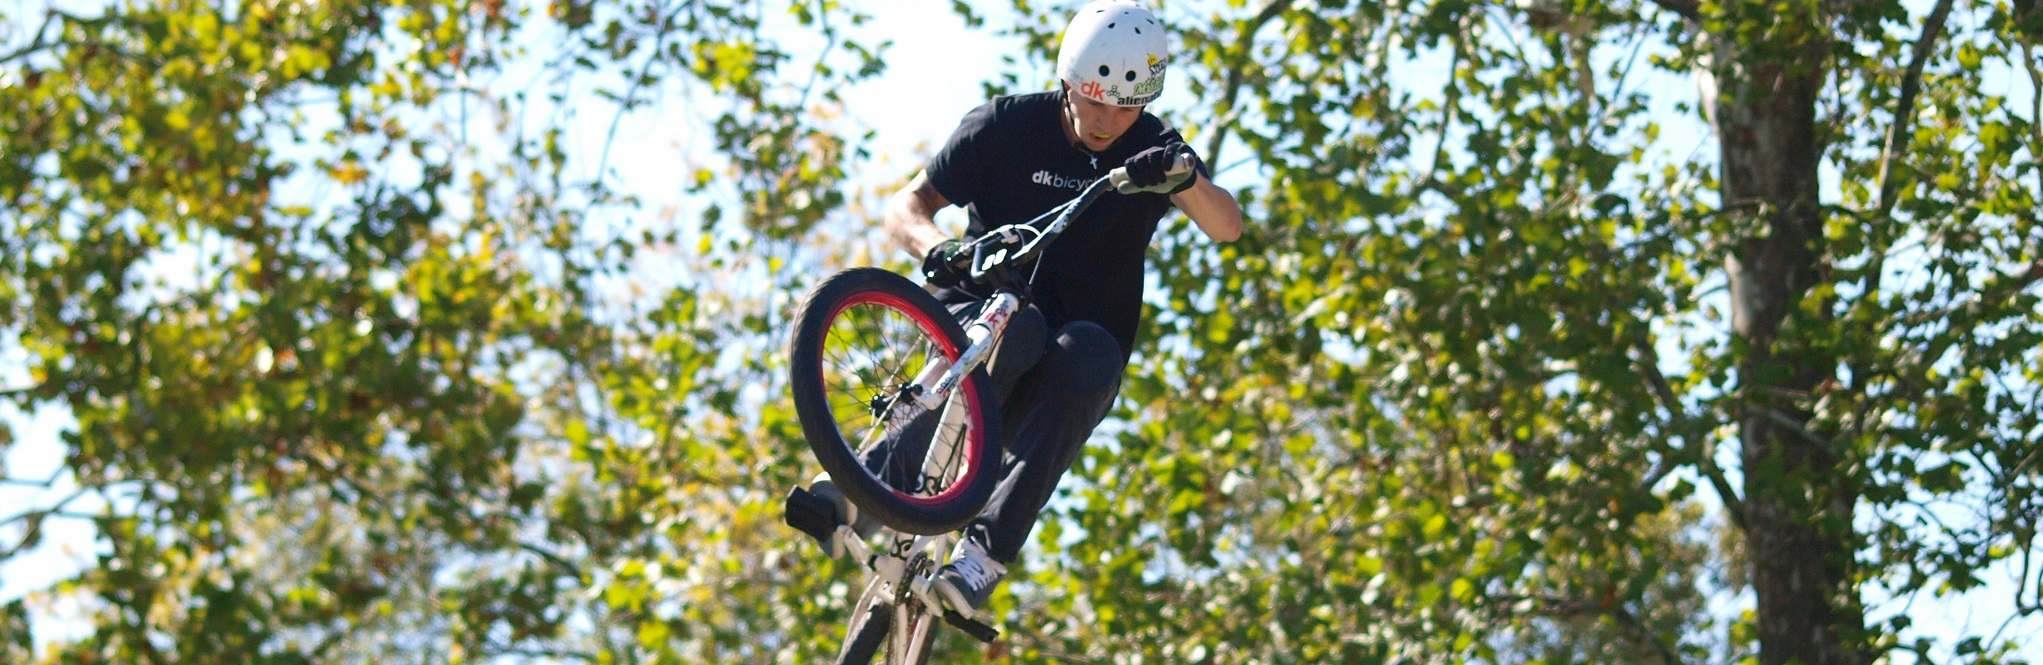 OutdoorX-Demos-BMX